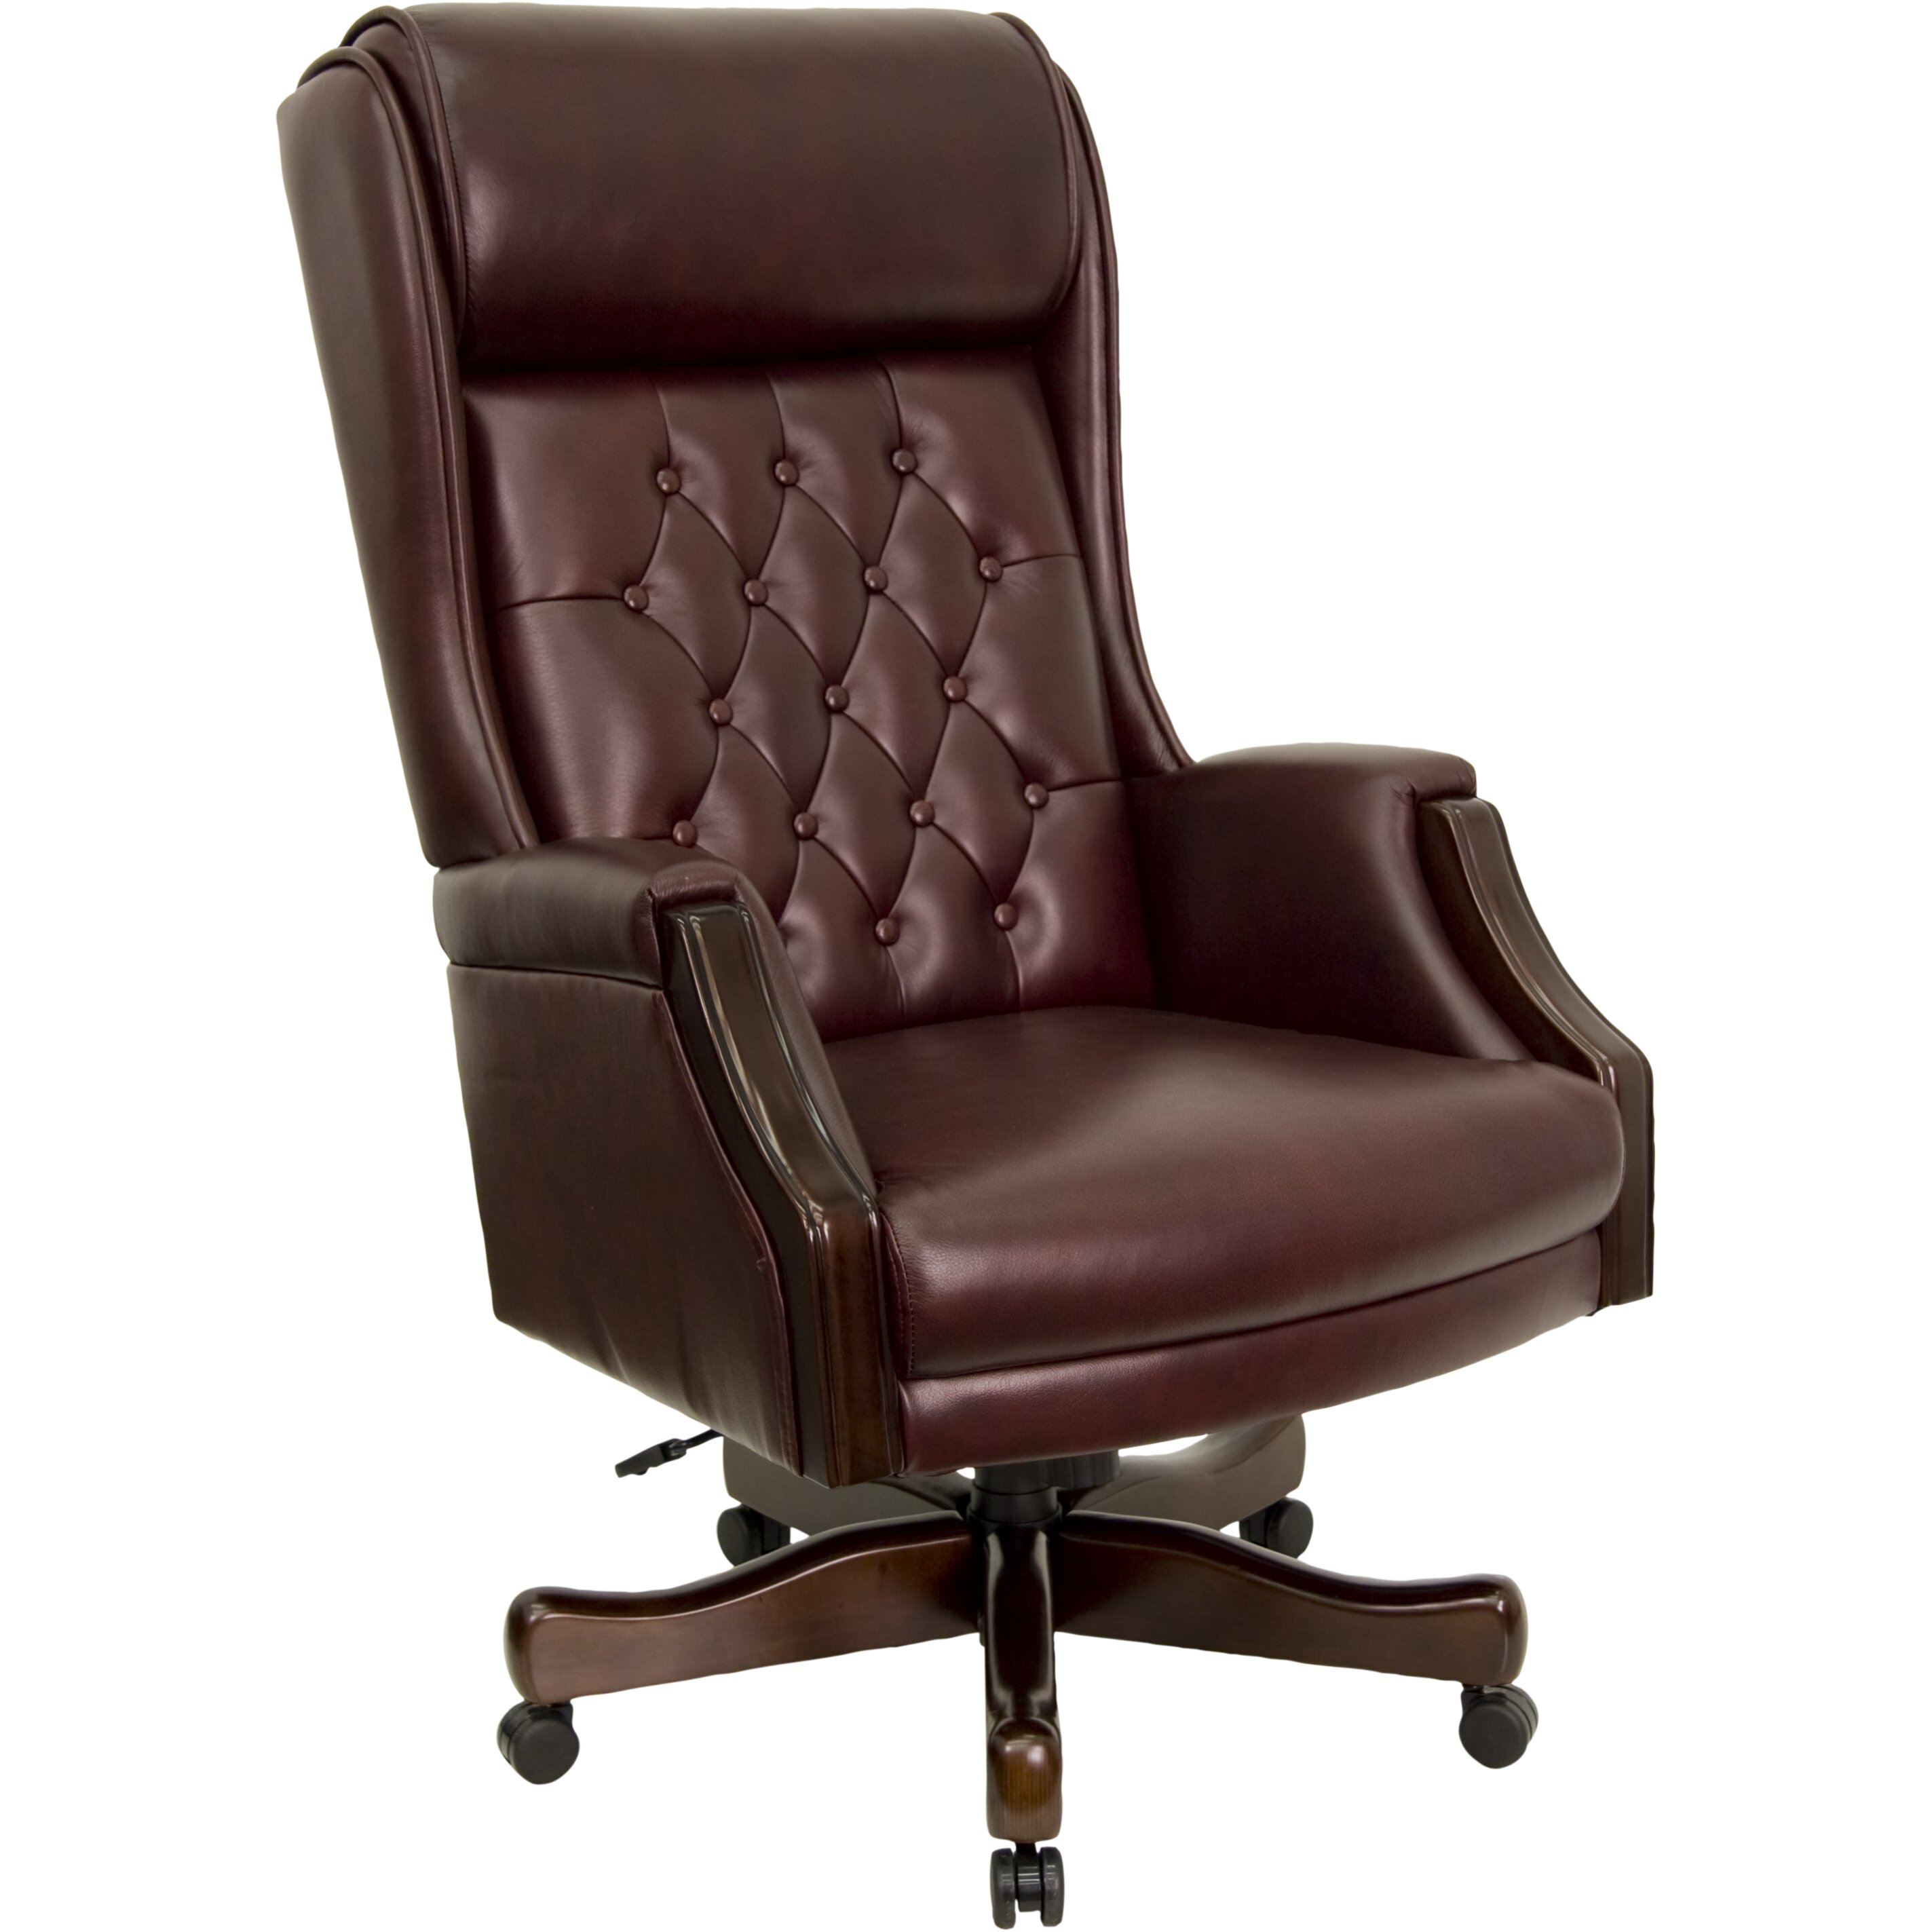 Flash Furniture High Back Leather Executive Office Chair Reviews  leather   Office Leather Chairs Executive High Back. Flash Furniture Mid Back Office Chair Black Leather. Home Design Ideas